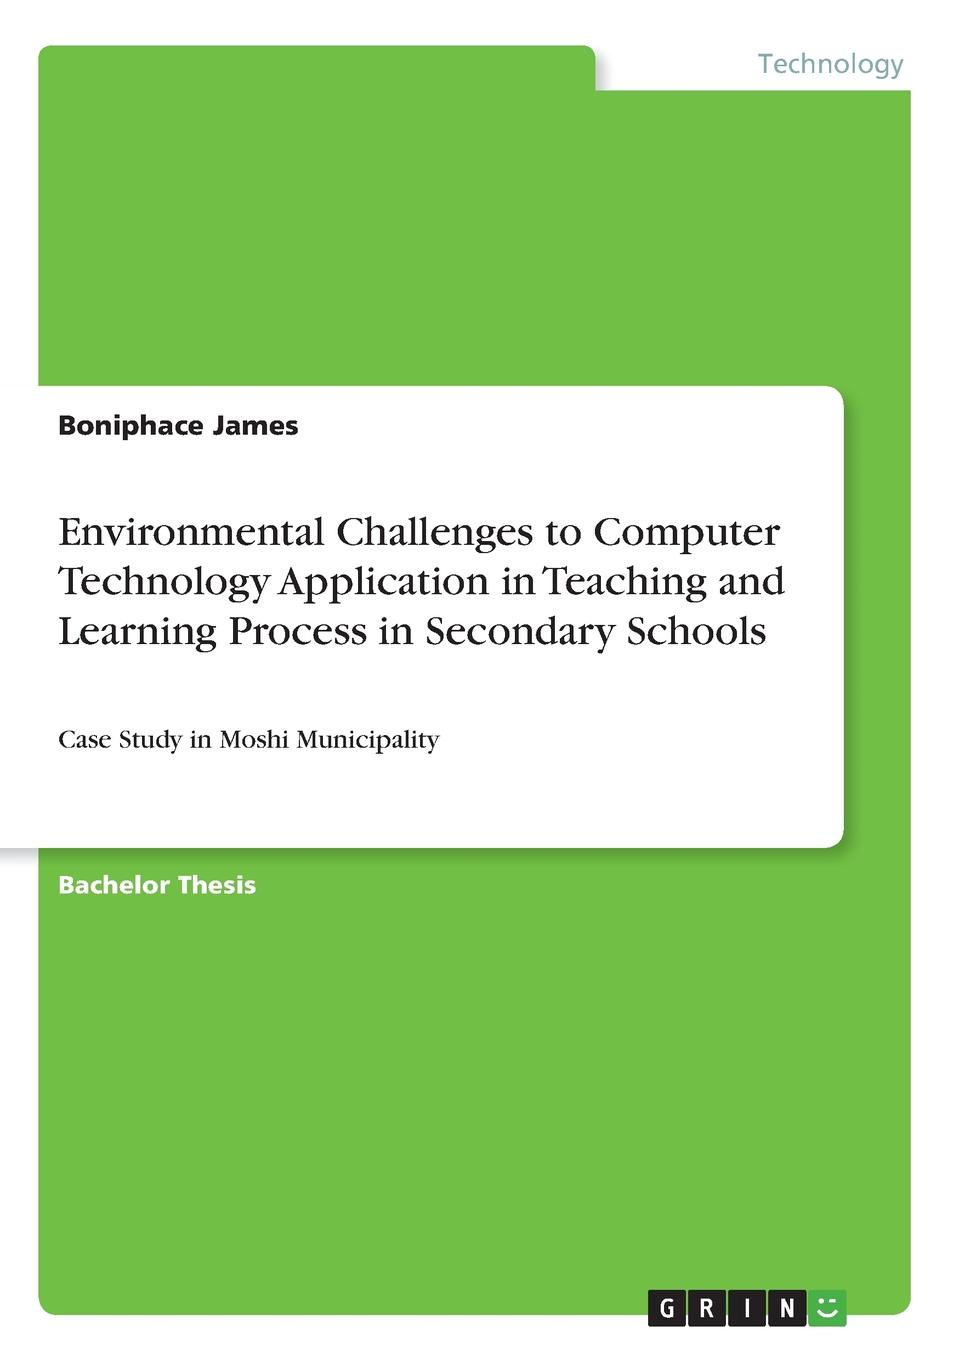 Boniphace James Environmental Challenges to Computer Technology Application in Teaching and Learning Process in Secondary Schools